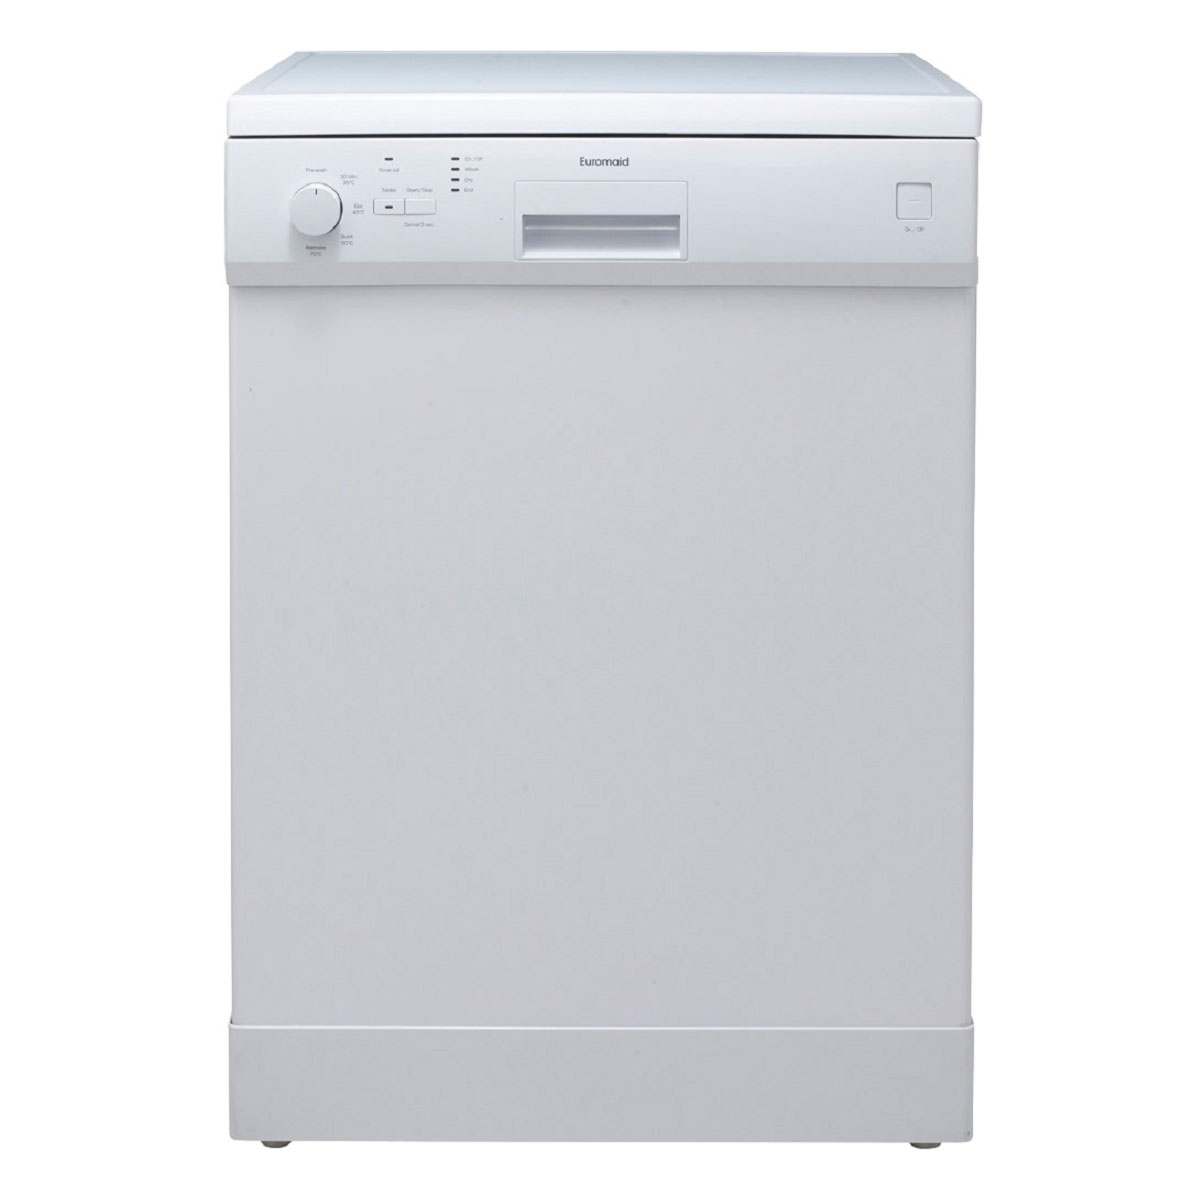 Euromaid Freestanding Dishwasher DR14W